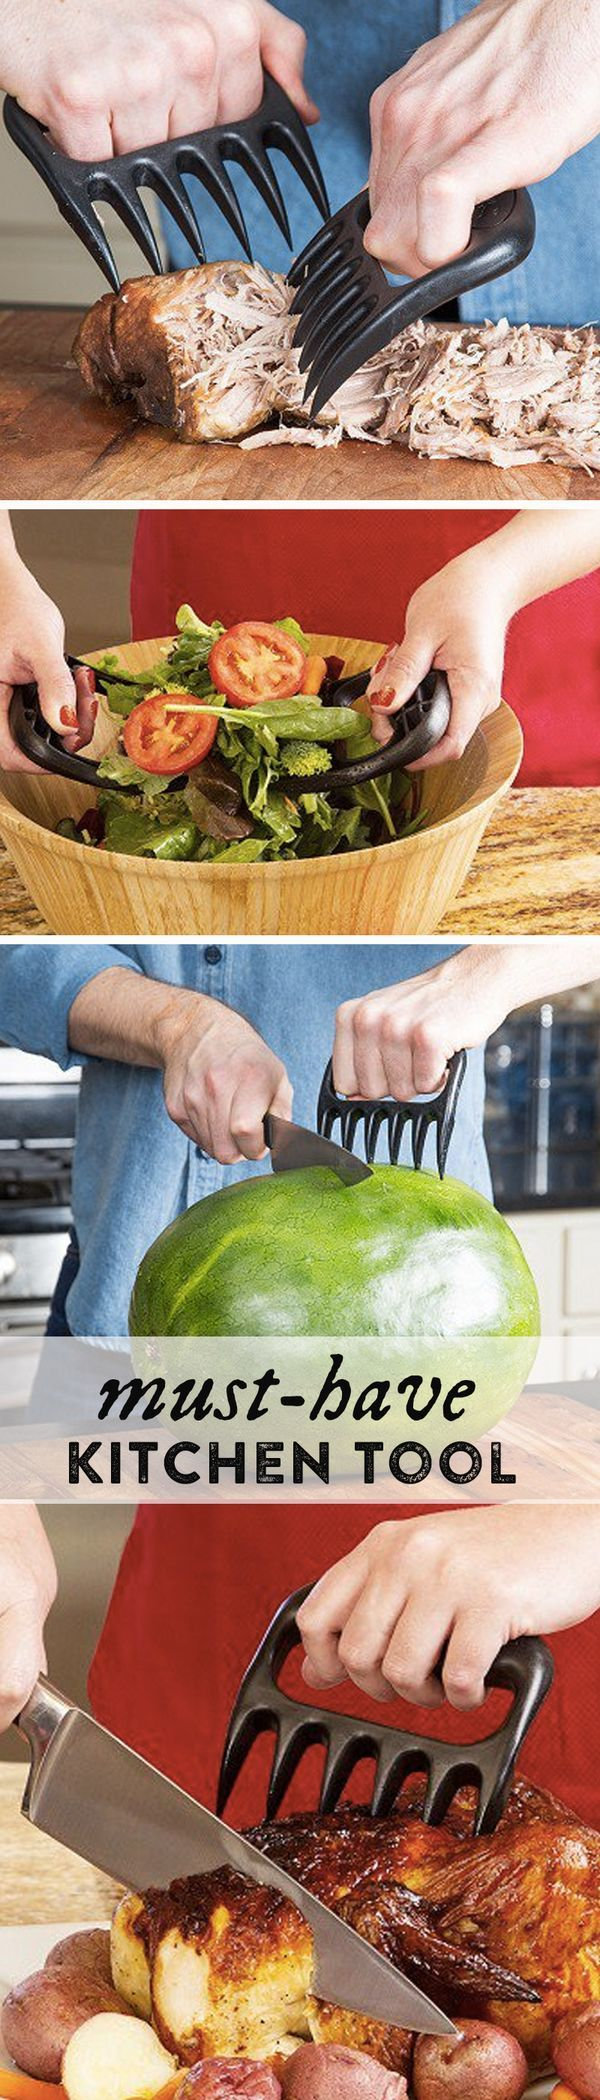 Bear Paws are sturdy meat shredding claws that can turn you into a culinary Edward Scissorhands. Grip these Made in the USA claws to easily shred pulled pork, chicken, or any other food you want to tear up.